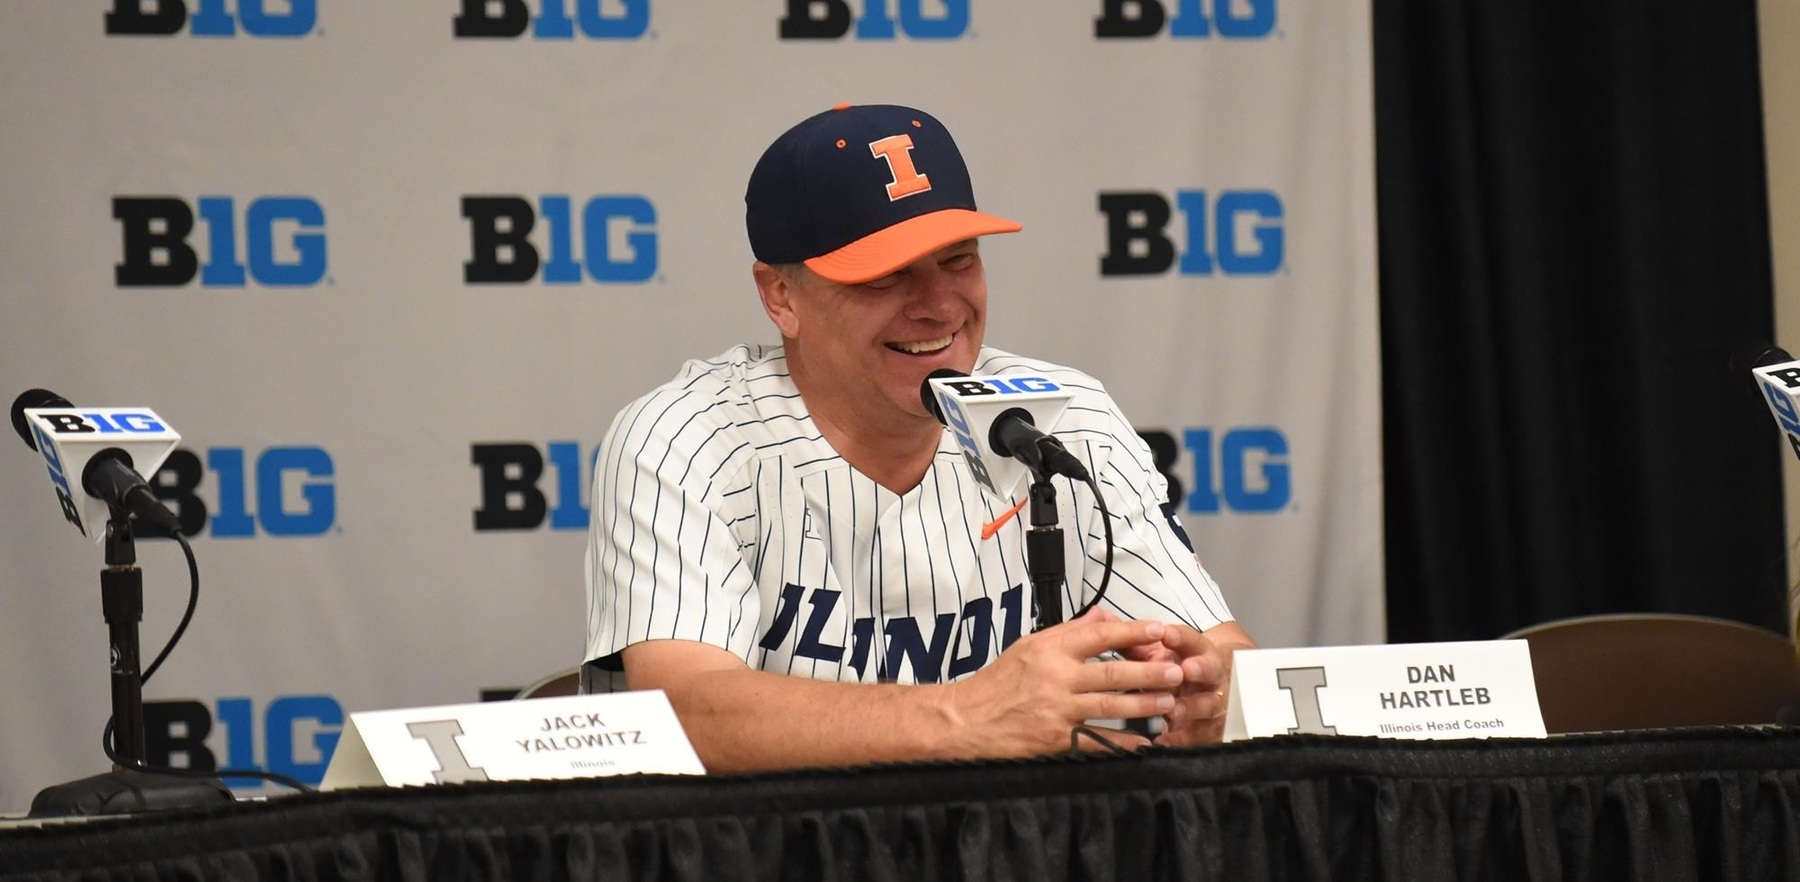 A smiling Dan Hartleb at a Big Ten press conference